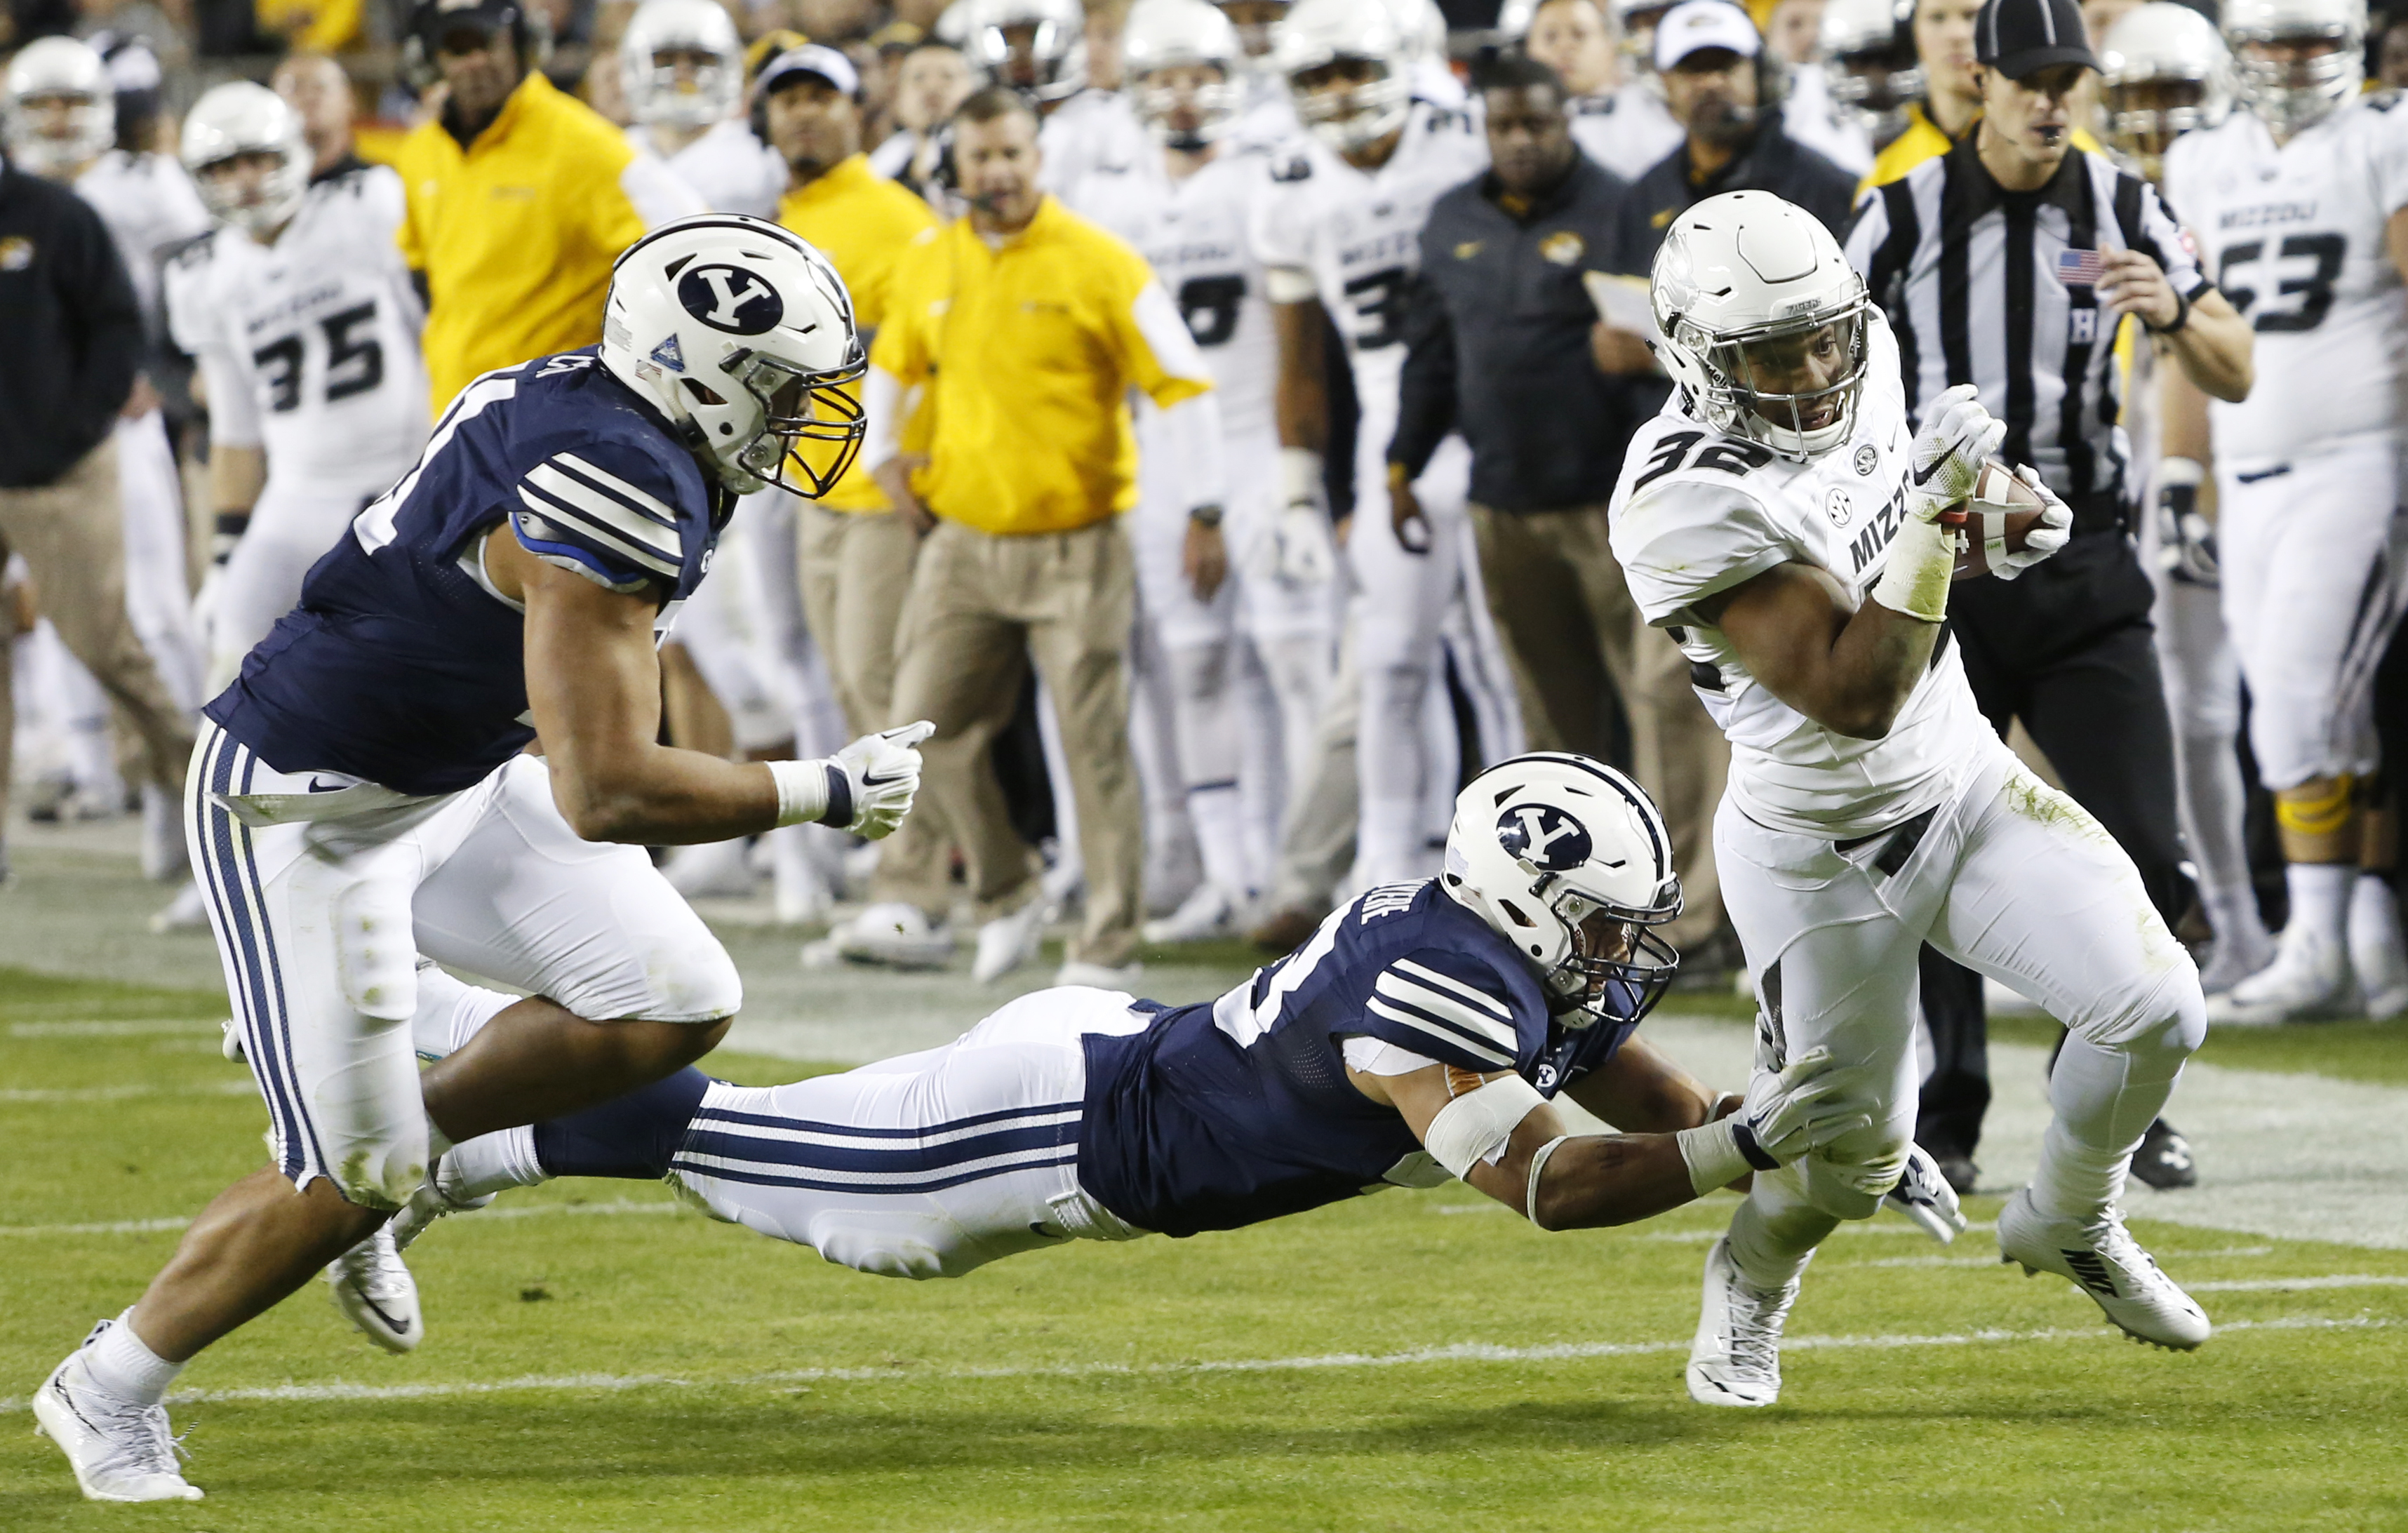 Missouri running back Russell Hansbrough, right, slips past BYU linebackers Jherremya Leuta-Douyere, center, and Harvey Langi, left, in the first half of a college football game at Arrowhead Stadium, Saturday, Nov. 14, 2015, in Kansas City, Mo. (AP Photo/